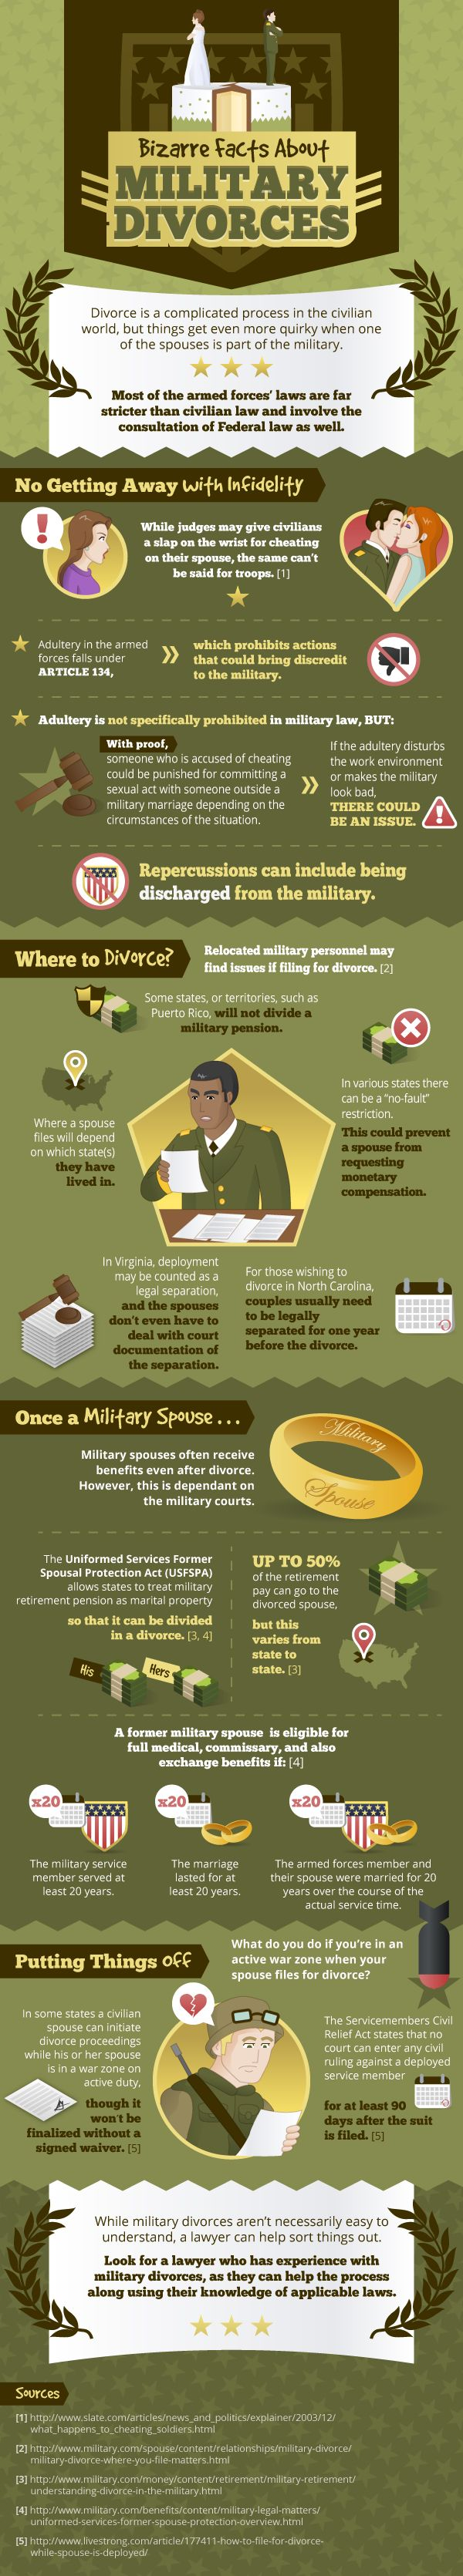 Bizarre Facts About Military Divorces [INFOGRAPHIC]